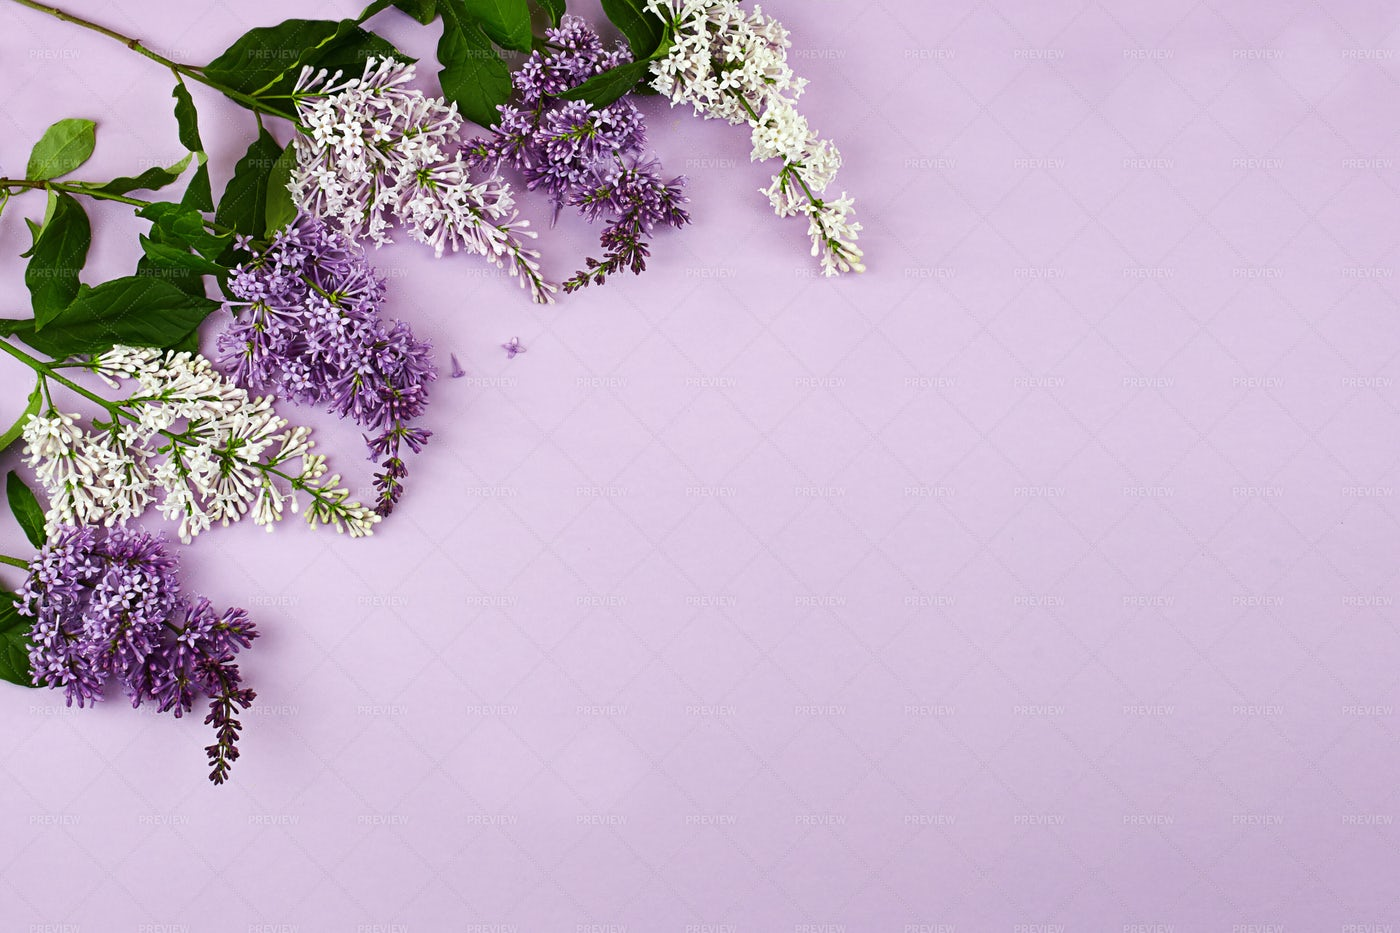 Lilacs On A Lilac Background: Stock Photos